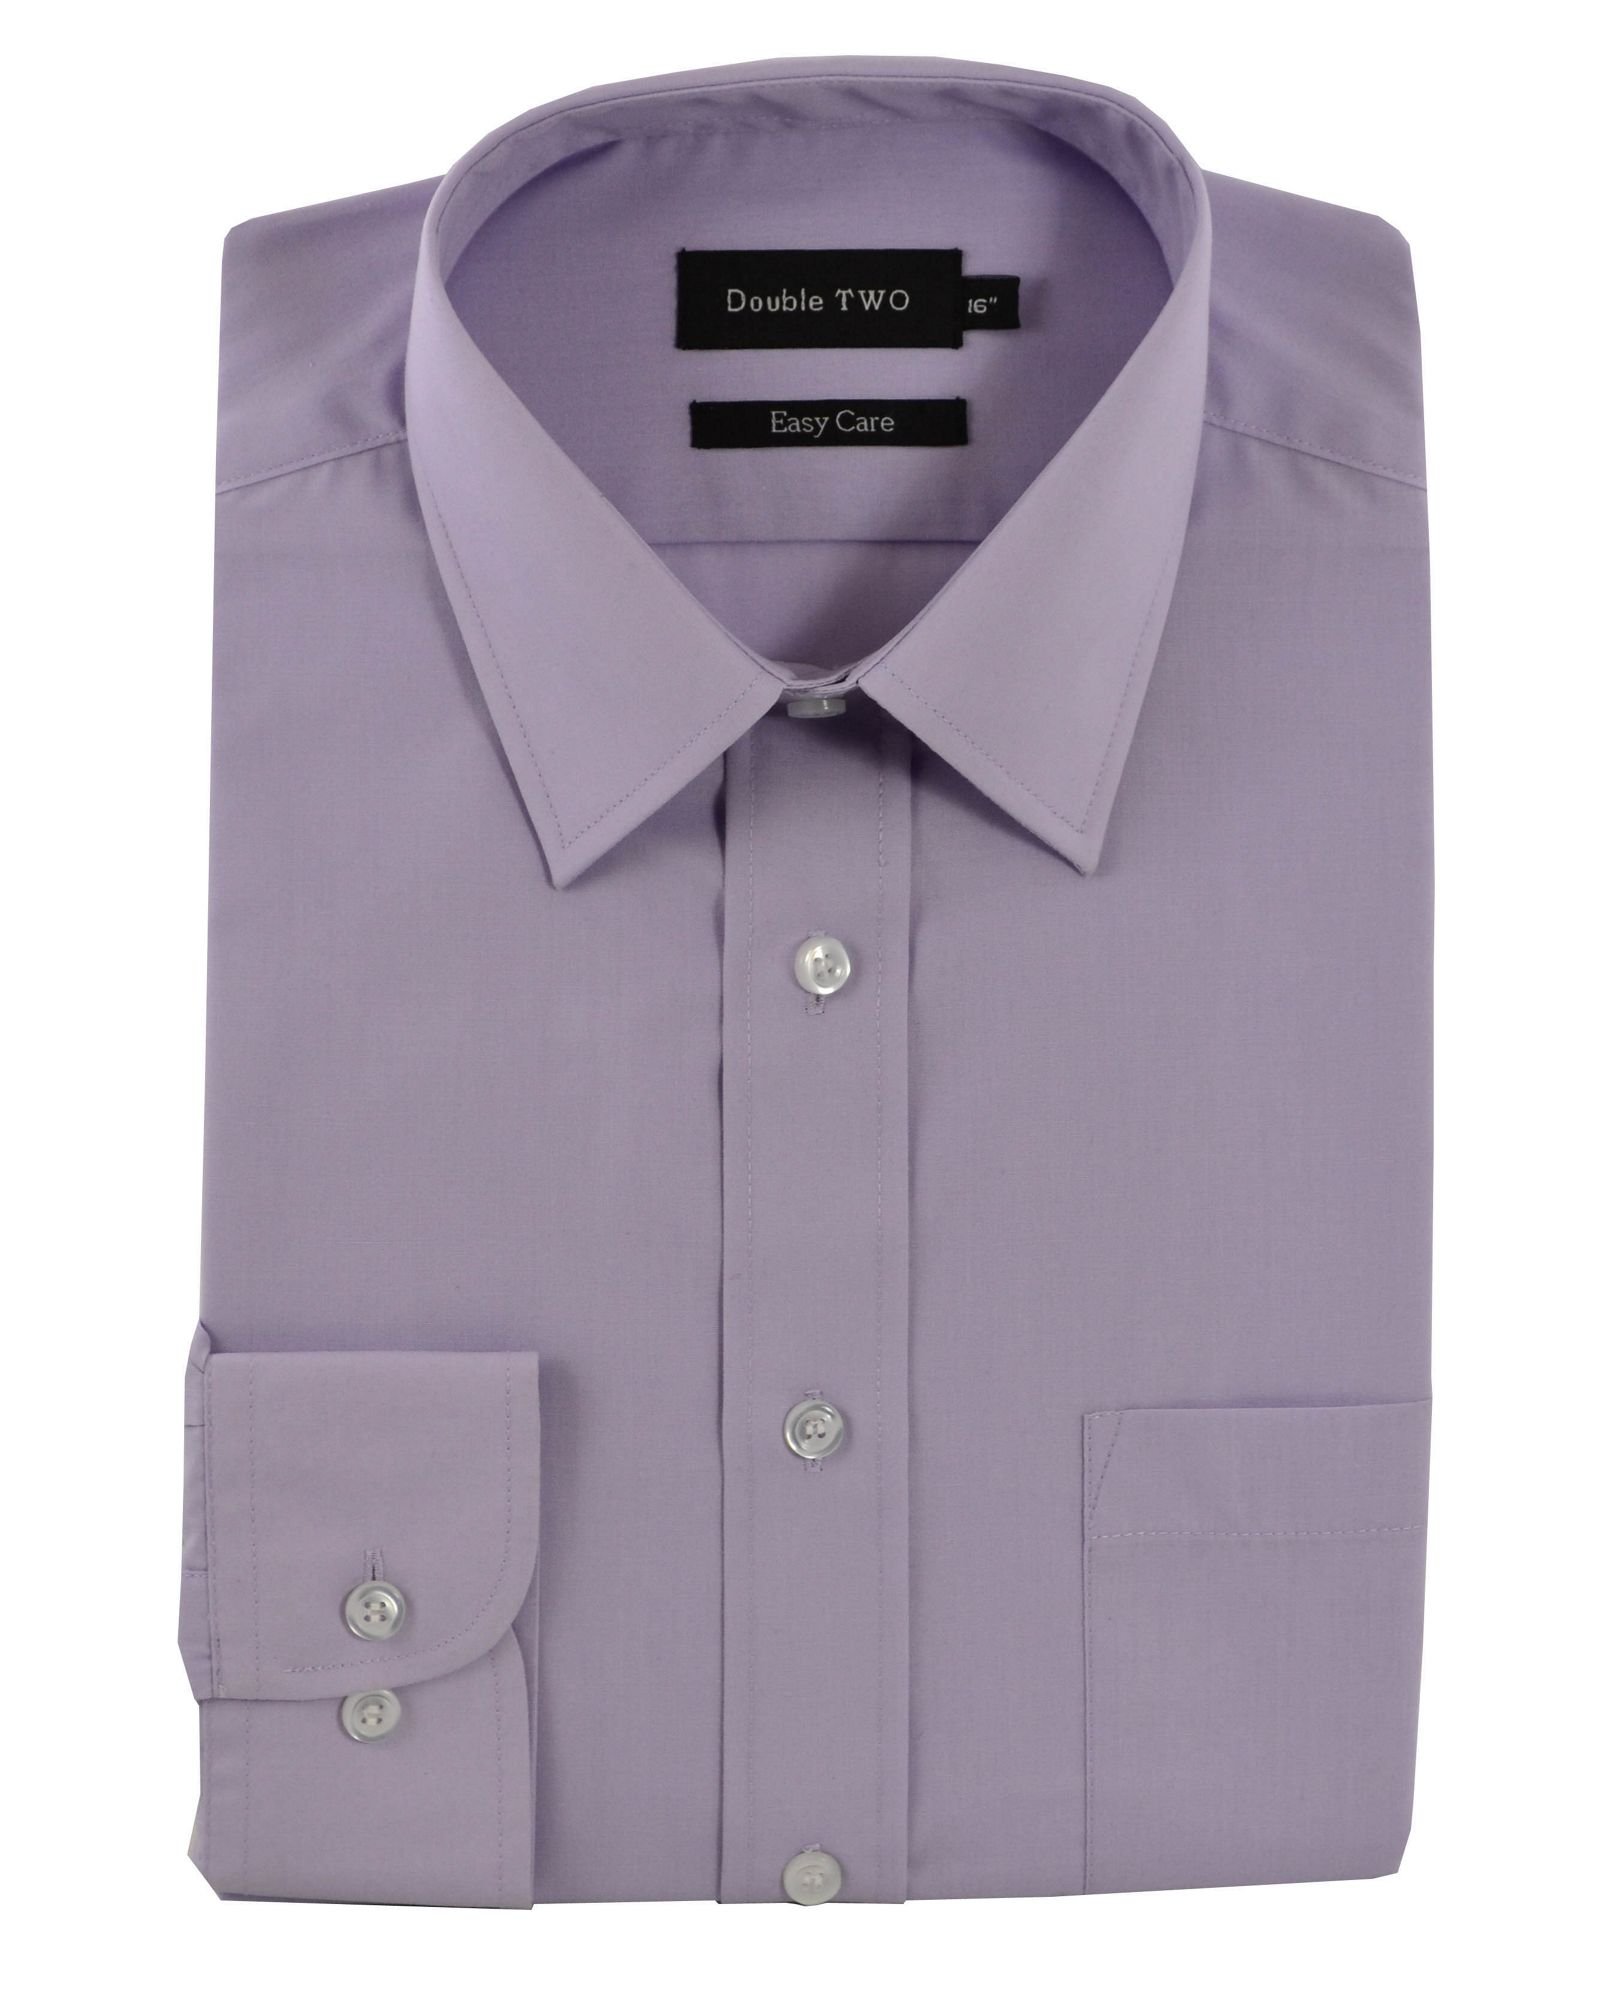 Double two extra tall custom fit shirt in purple for men lyst for Extra long dress shirts